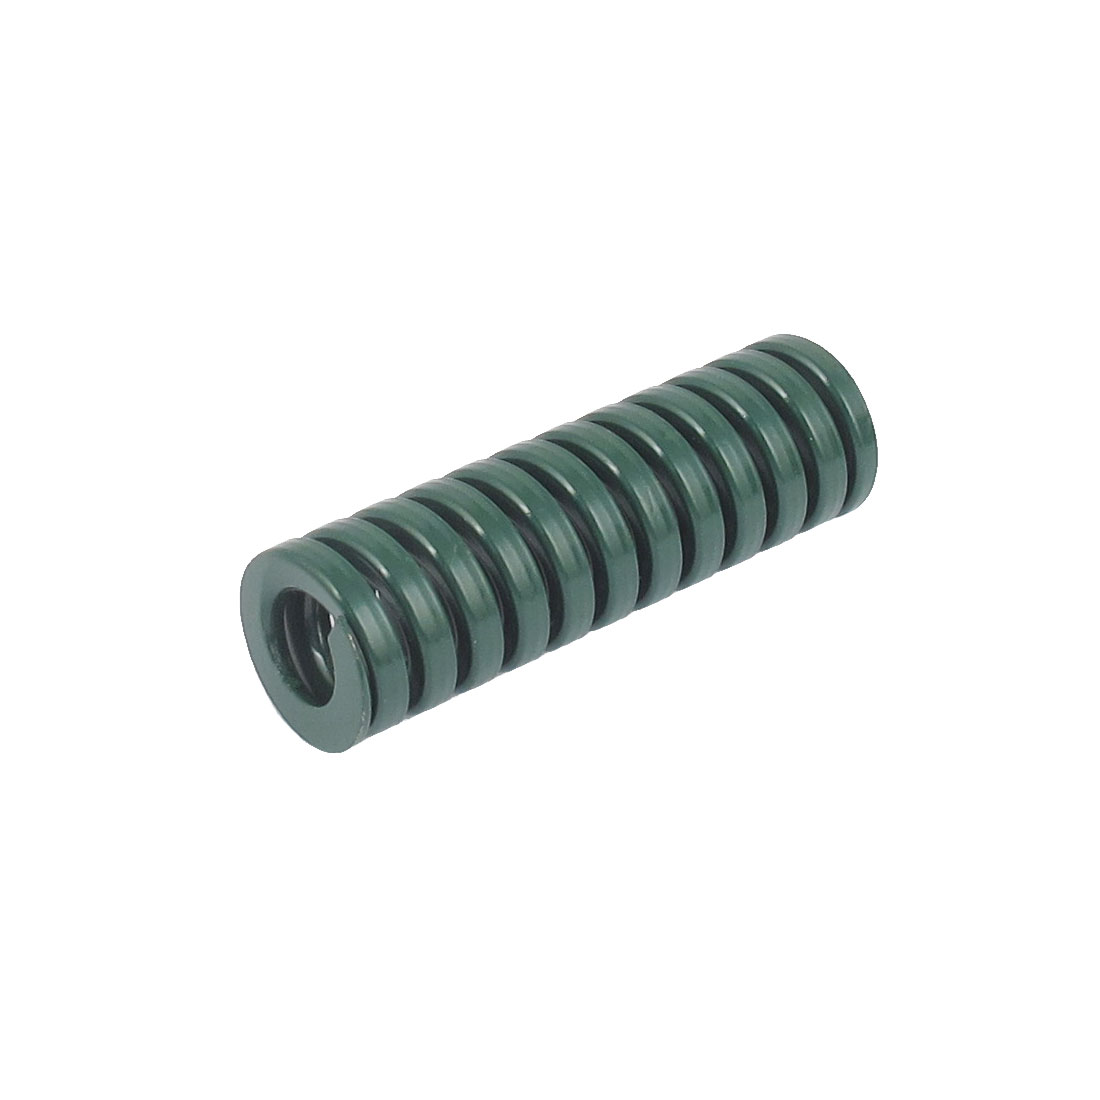 16mmx50mm Chromium Alloy Steel Heavy Load Die Spring Green